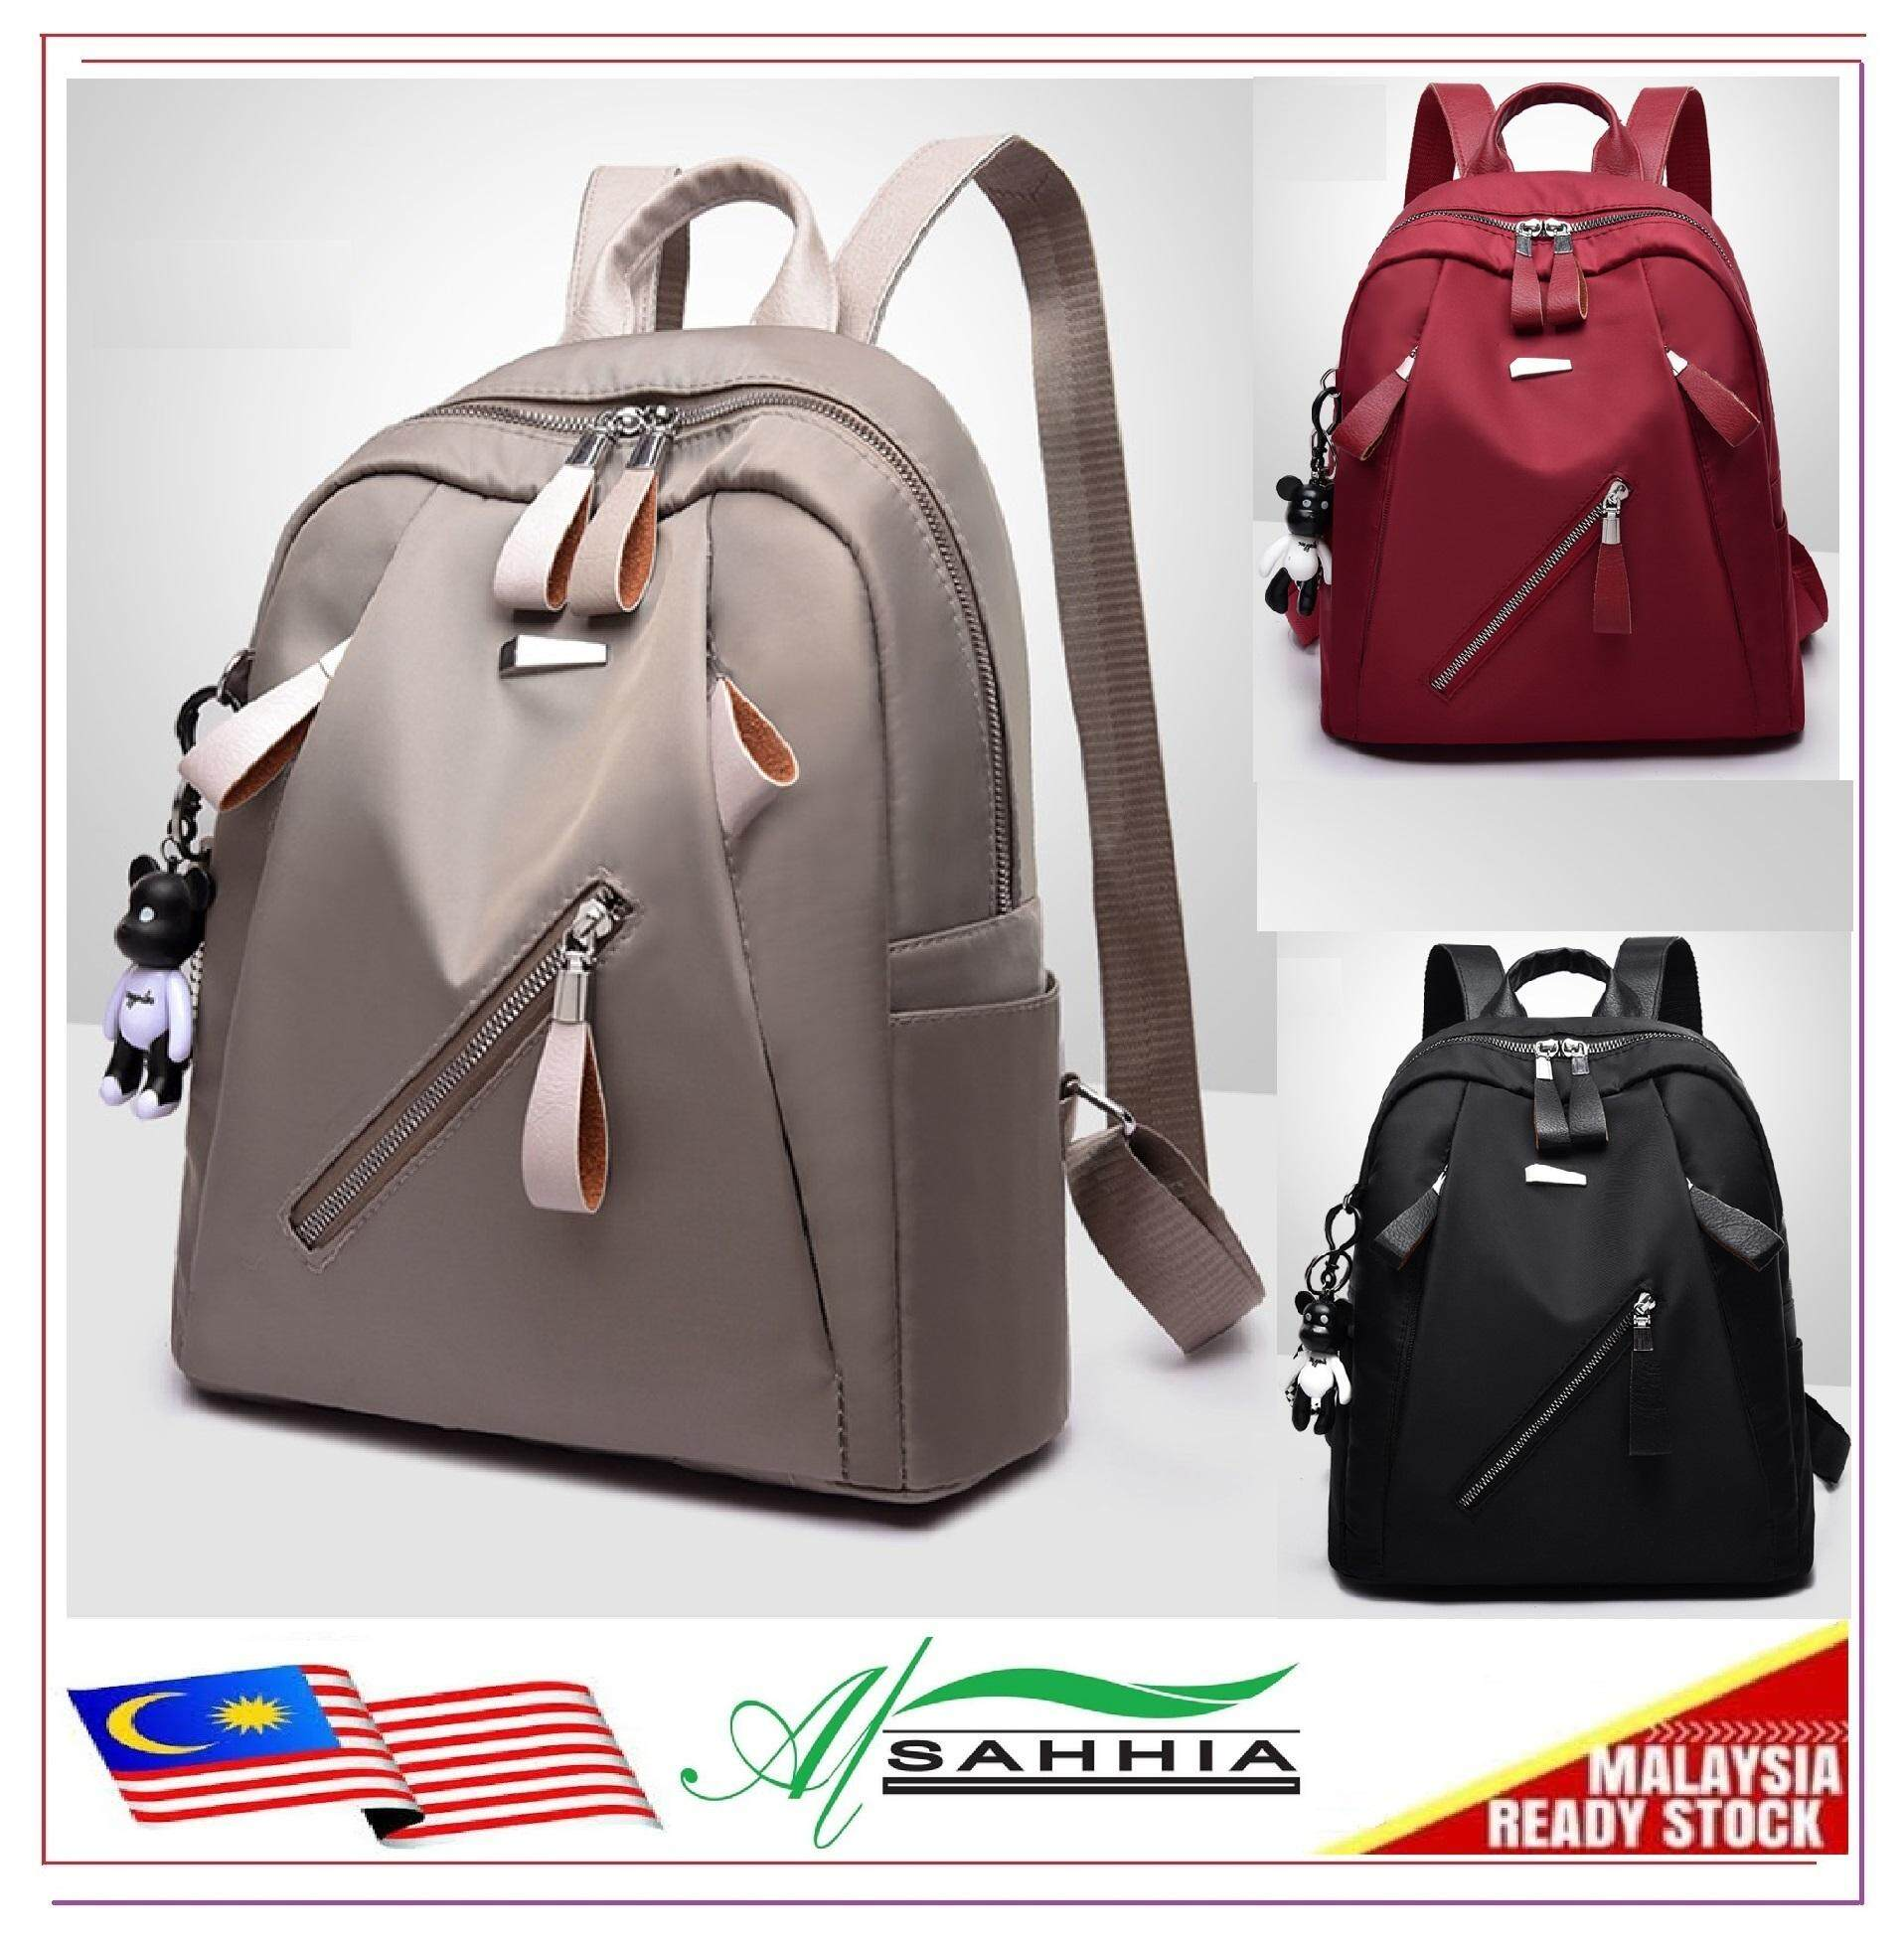 75d28a6f4f9 4G3 Al Sahhia Ready Stock Oxford Slanting Zip Waterproof Teenage Backpack  Travel Casual Bag Oxford Cloth Nylon